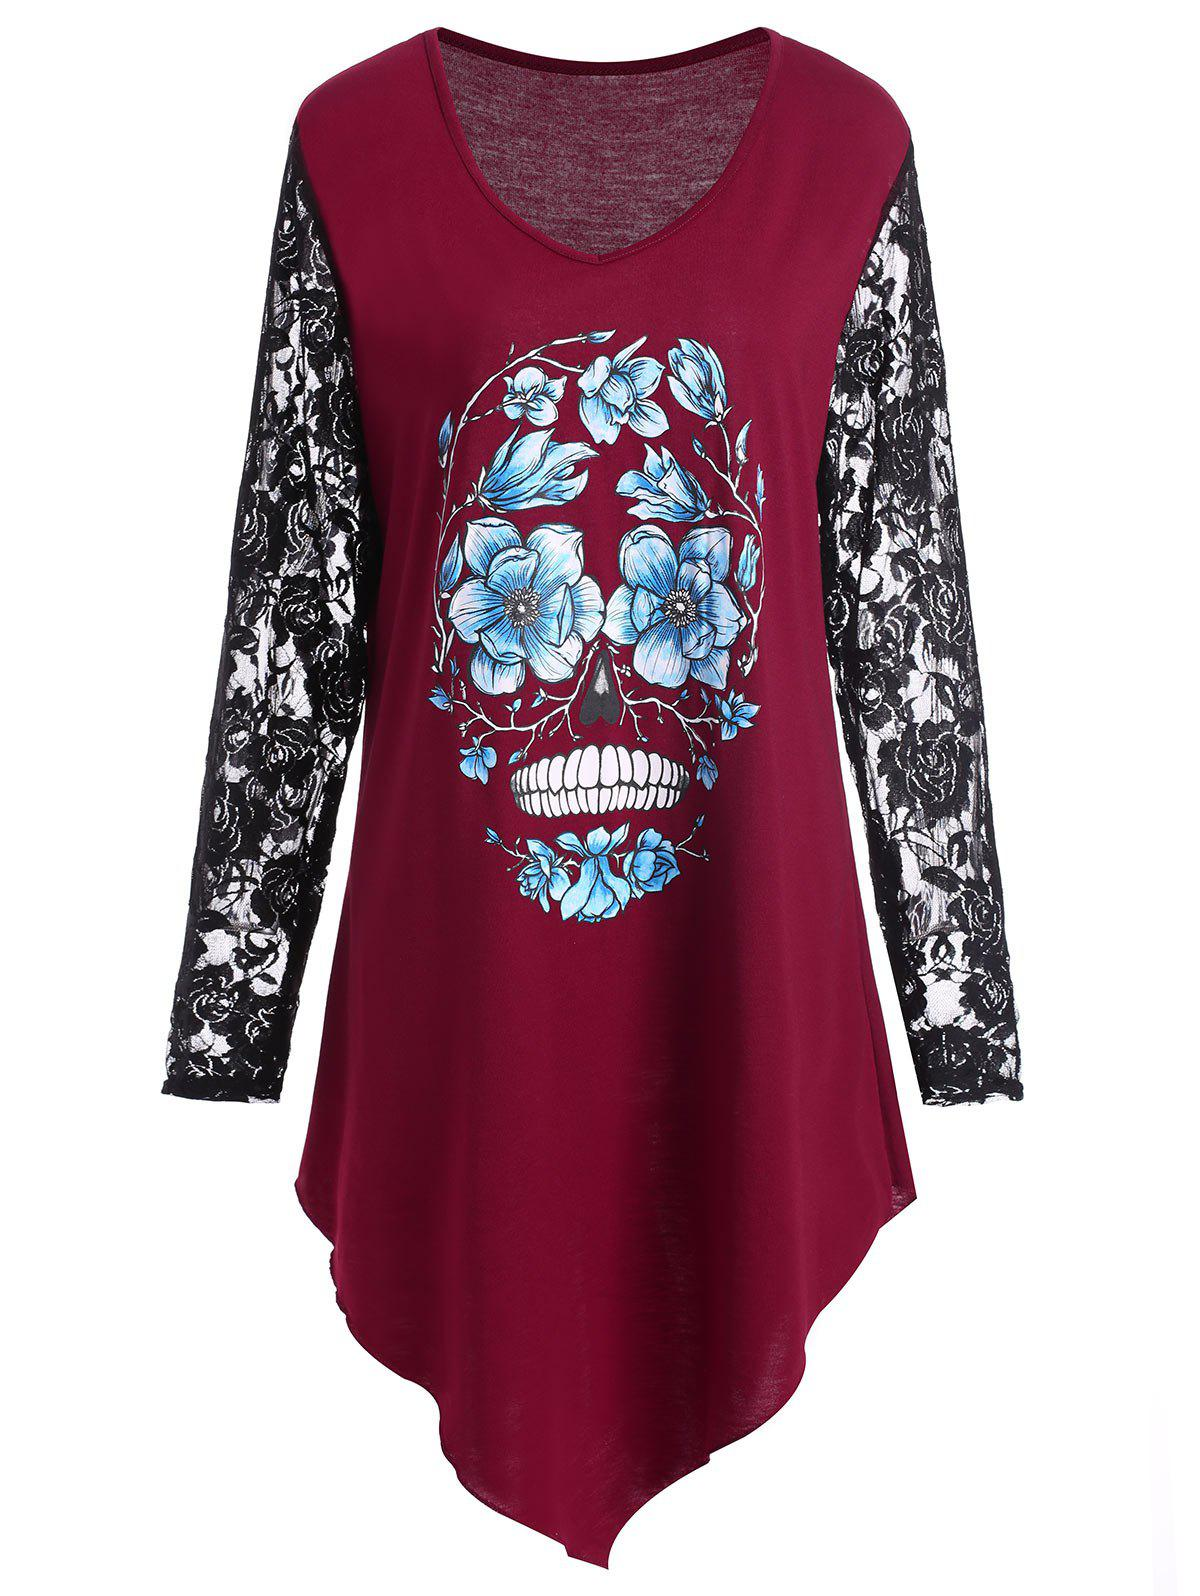 8cd89e372a4 2019 Plus Size Halloween Floral Skull Lace Panel T-shirt